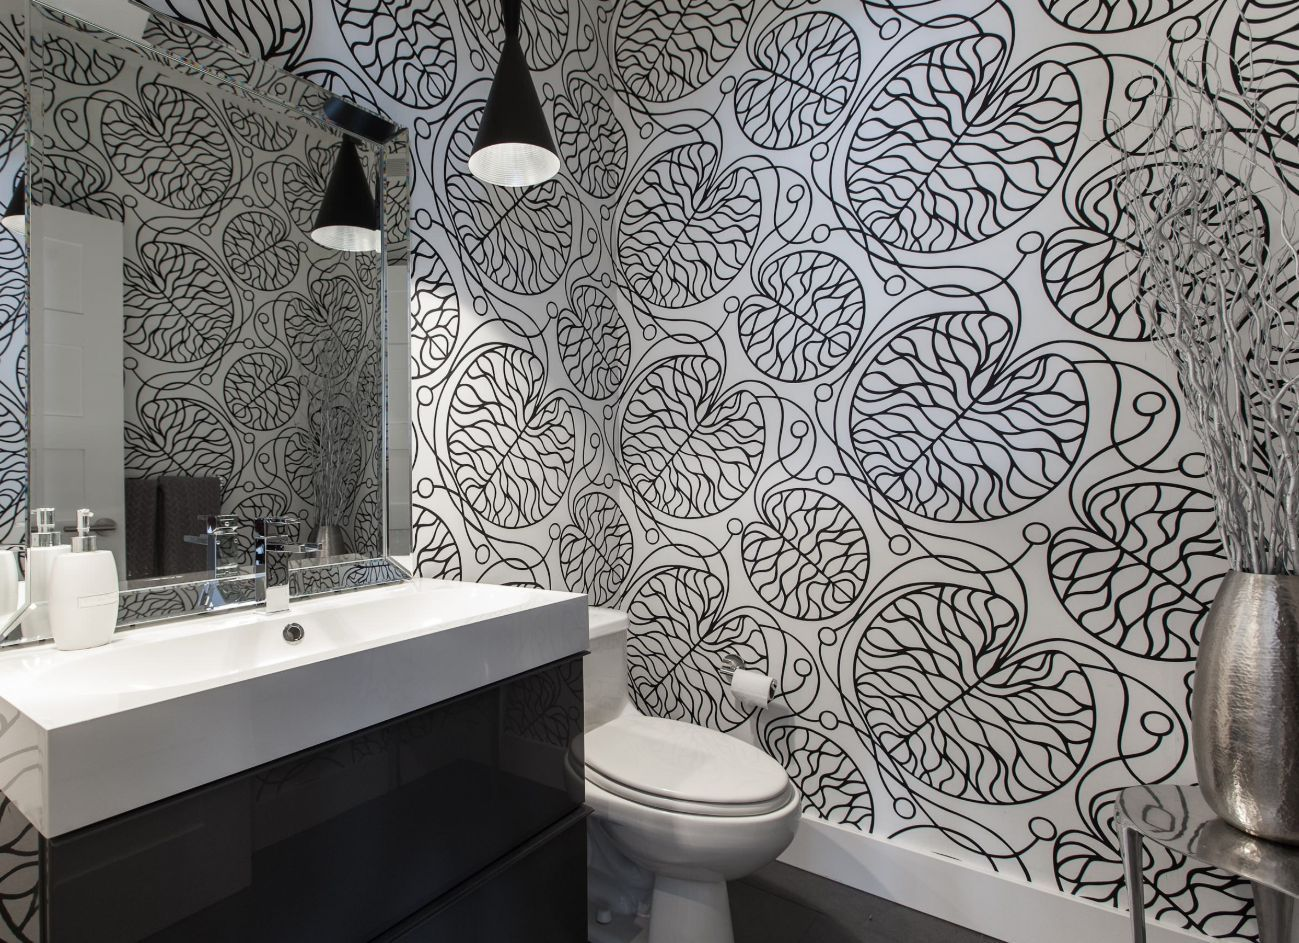 1558953966 467 black and white bathroom designs that show simple can also be interesting - Black and White Bathroom Designs That Show Simple Can Also Be Interesting